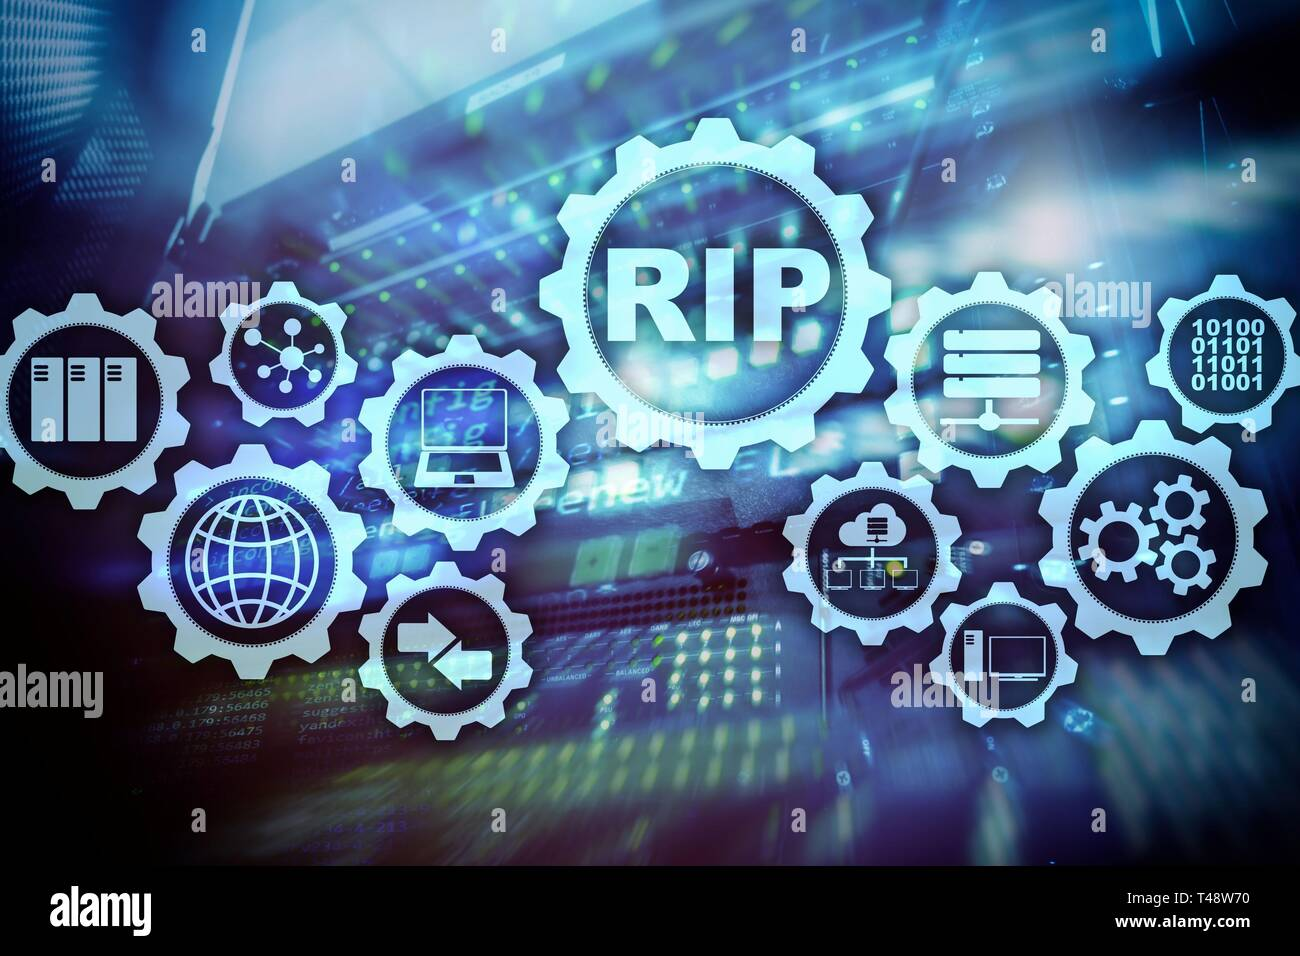 RIP Routing Information Protocol. Technology networks cocept. - Stock Image